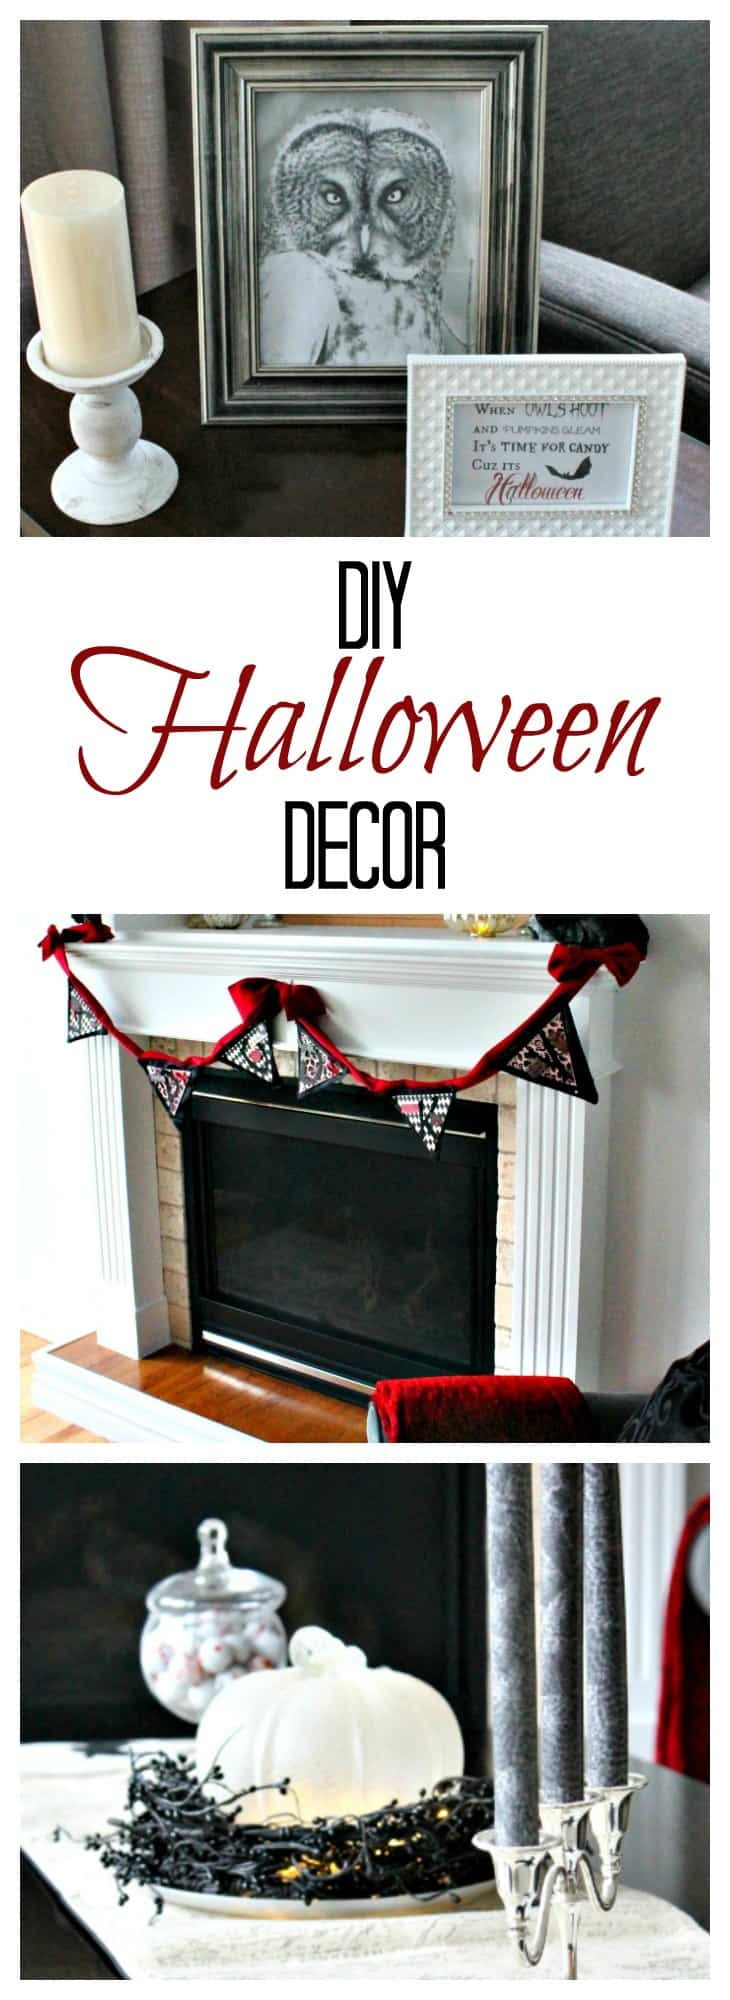 bling on halloween with pretty diy halloween decorations - of